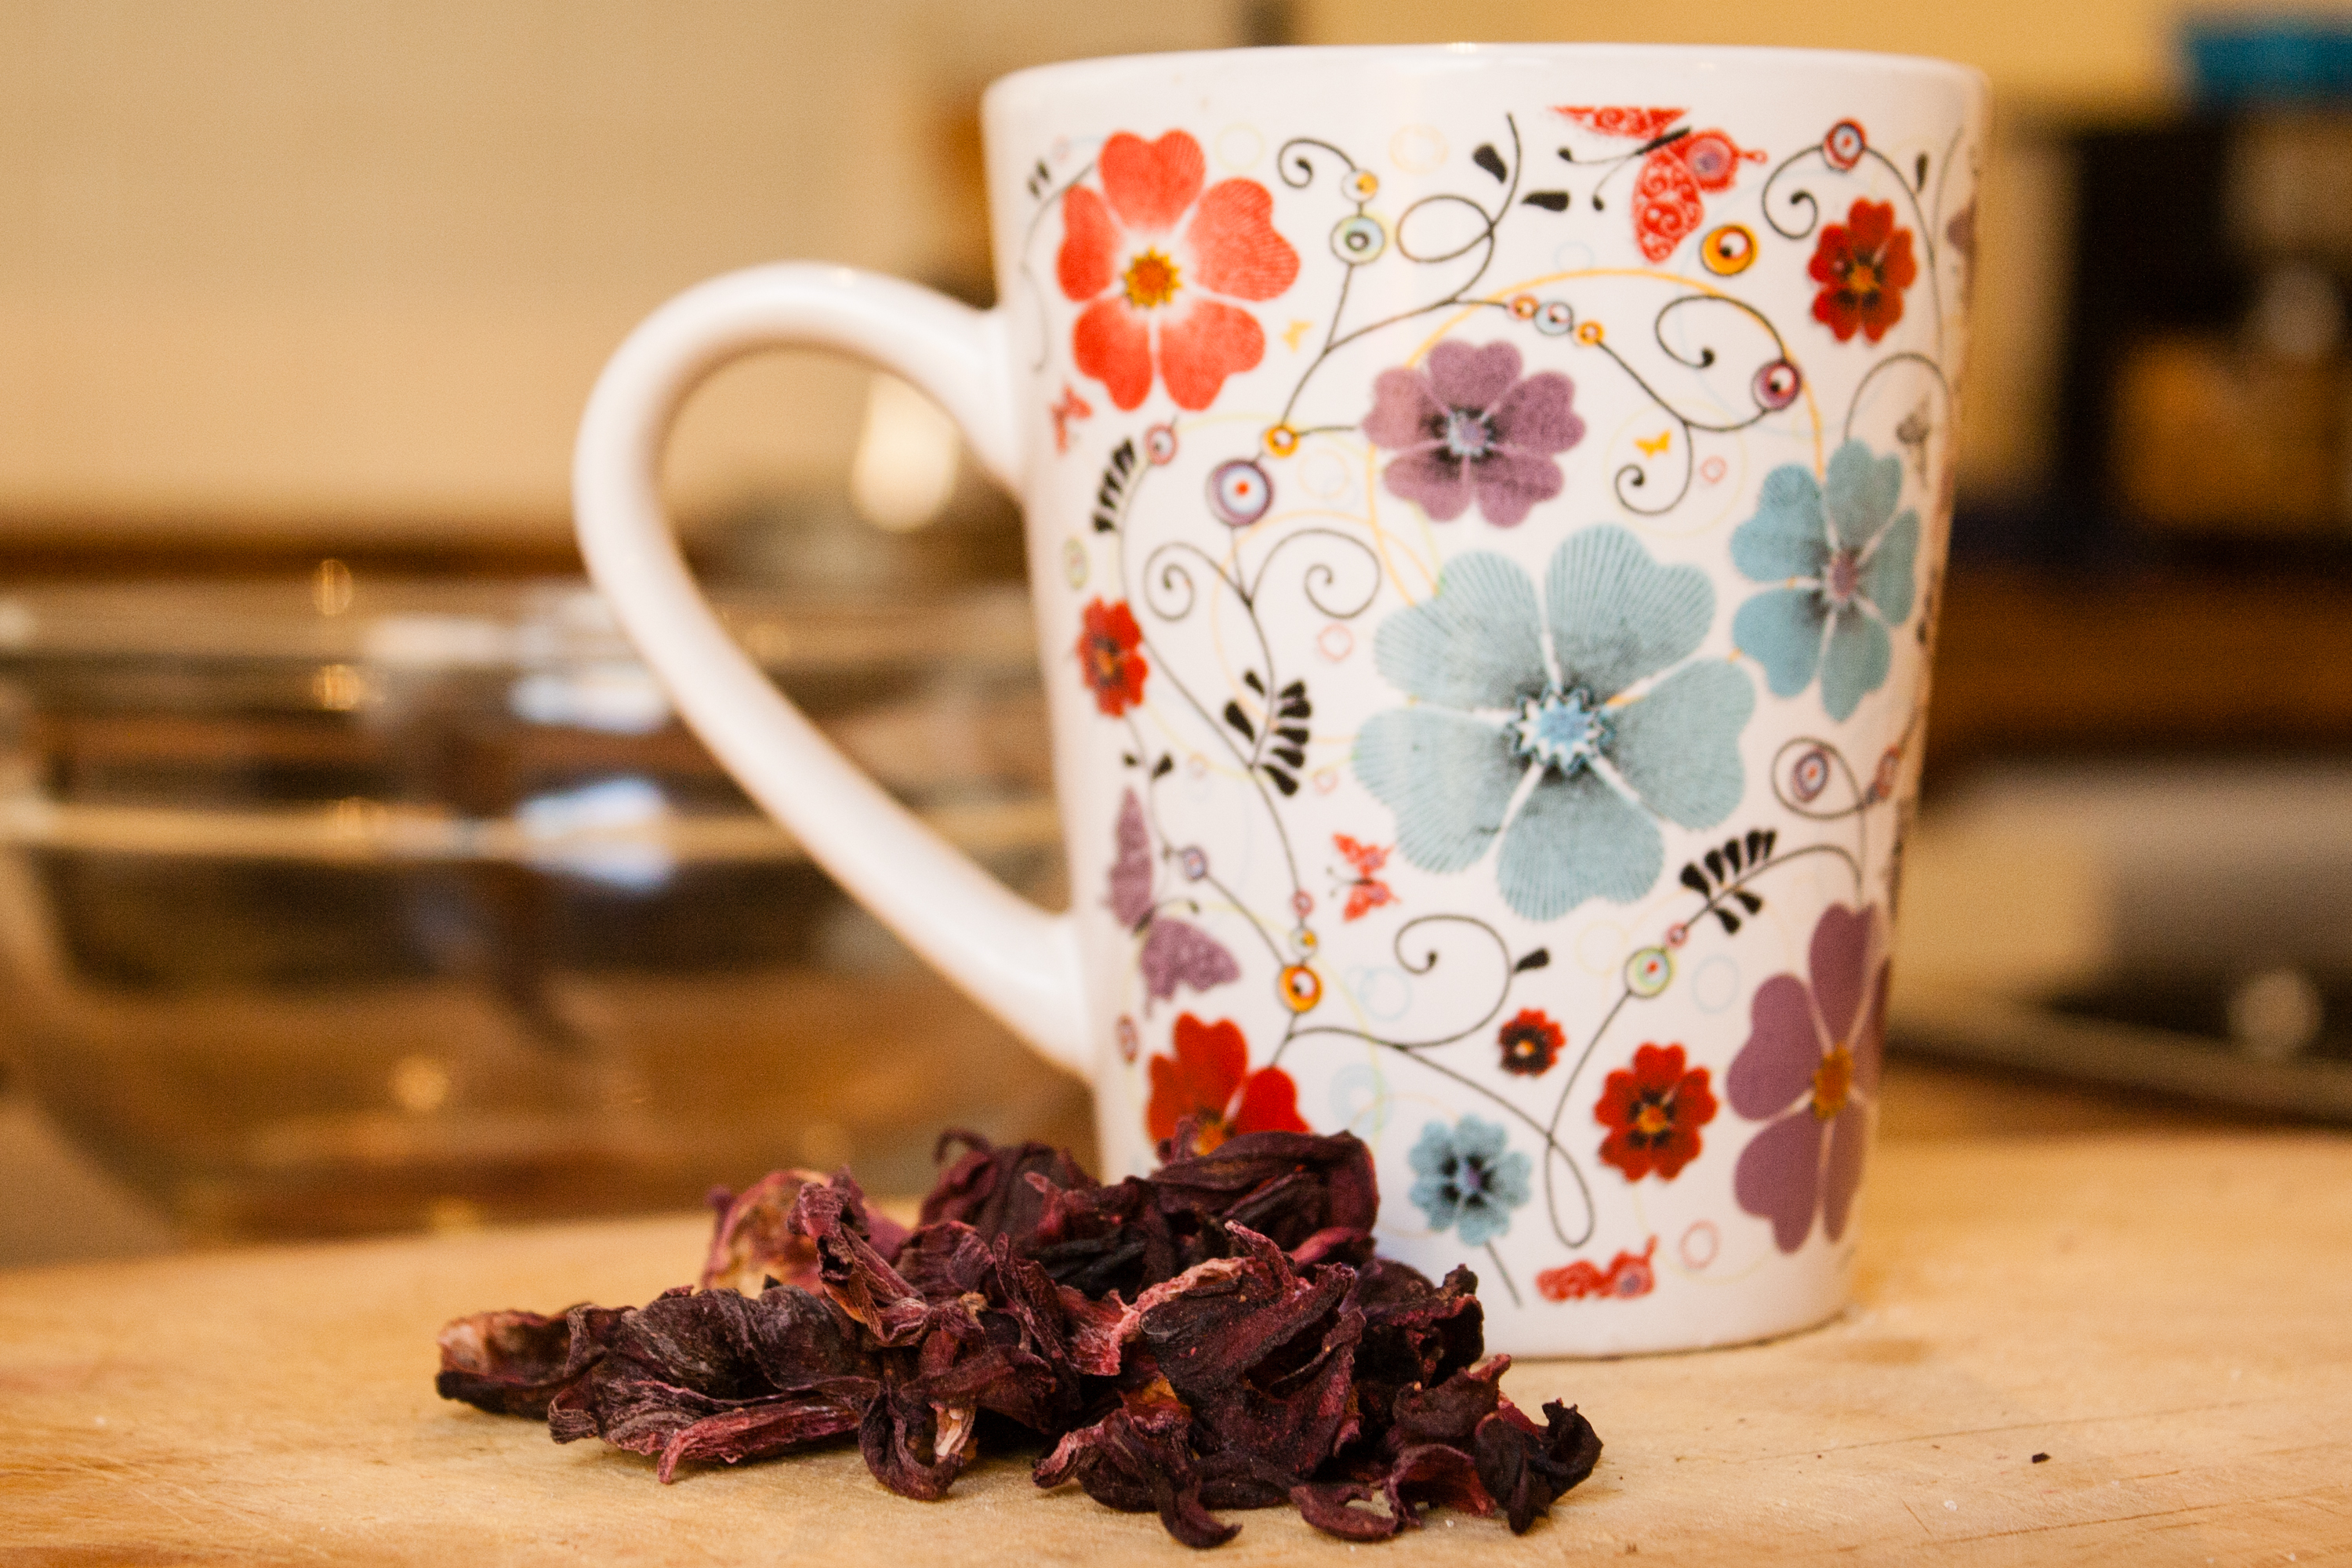 How to make tea from hibiscus flowers livestrong izmirmasajfo Choice Image